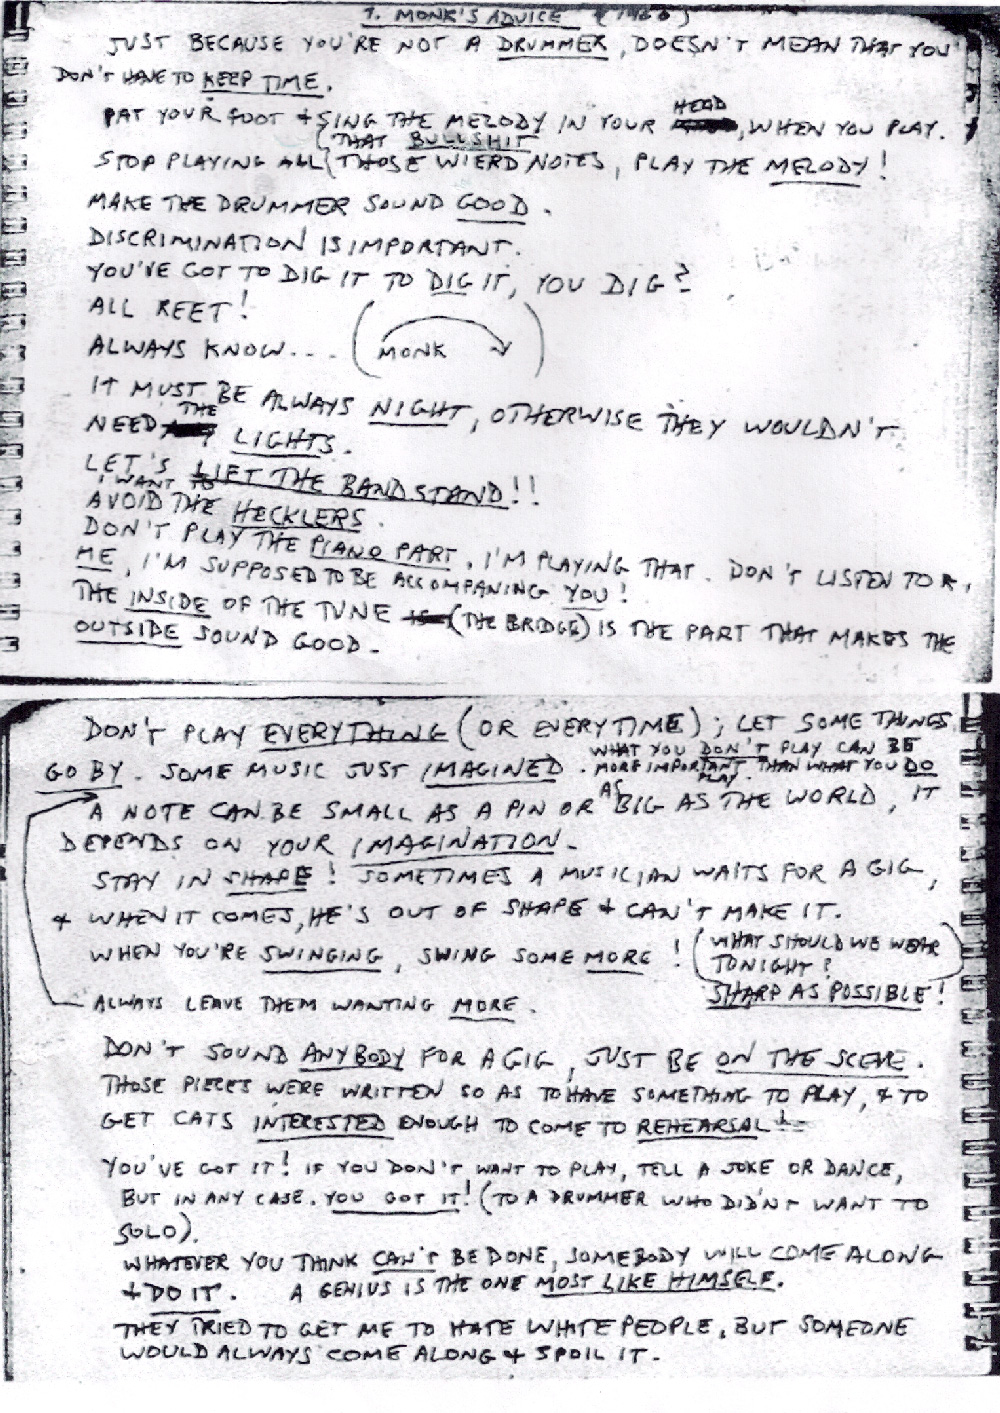 T. Monk's Advice 1960 . This list was transcribed by saxophonist Steve Lacy in 1960. The advice came from legendary pianist and band-leader Thelonious Monk. 30 years after his death, Monk's advice holds up. Certainly as a musician, this list is relevant. I've found, however, this advice like the basic rules of improv is pretty much applicable to all forms of creation, and daily life. . Thelonious Monk 1960